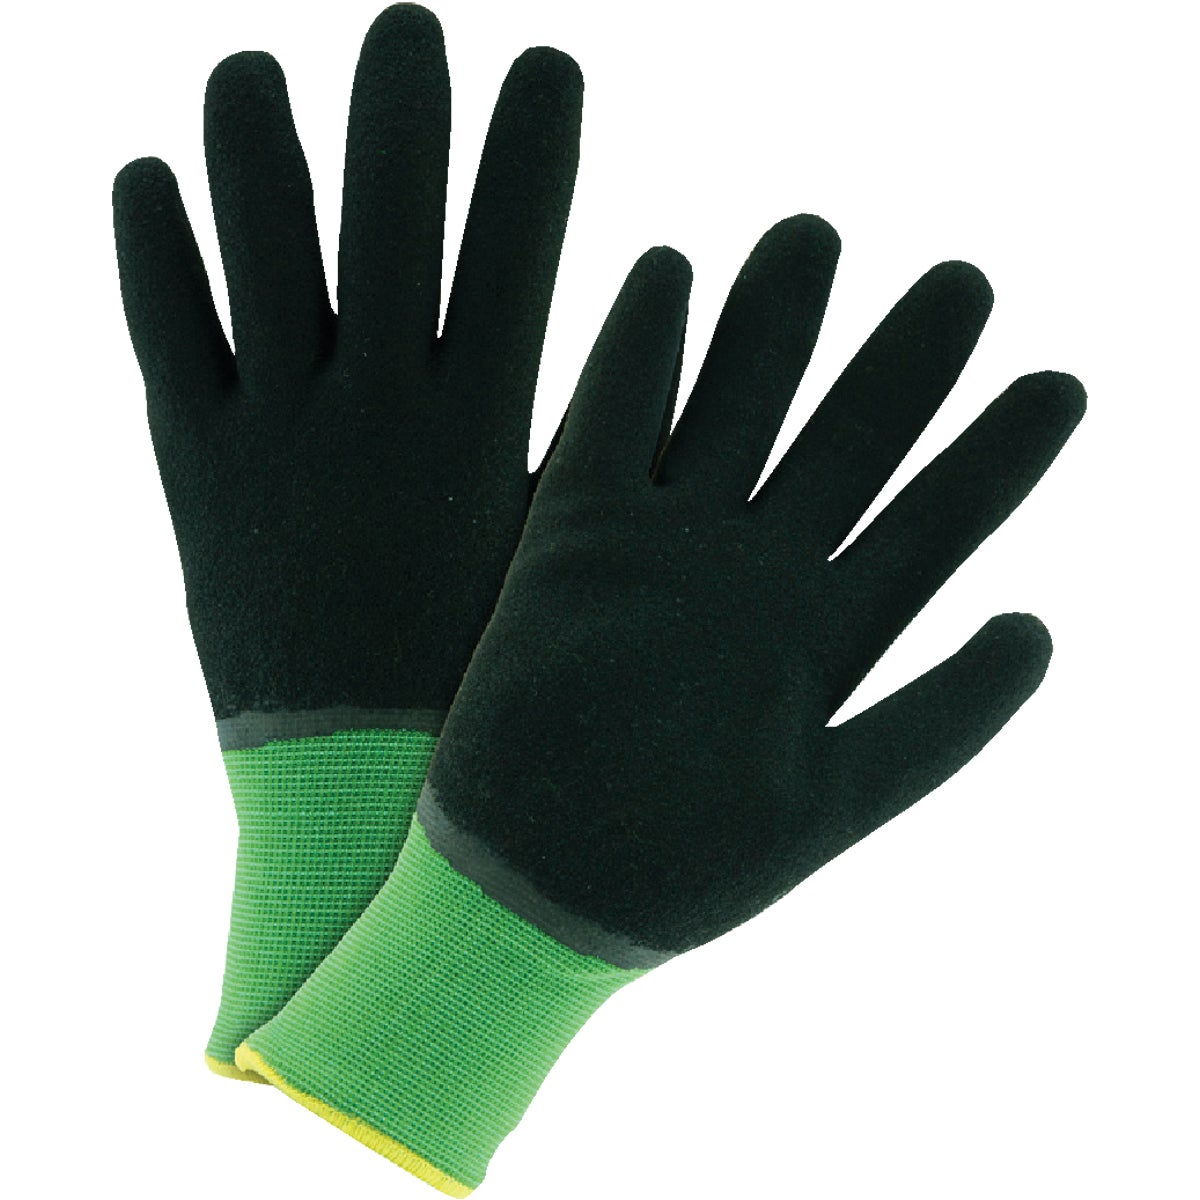 LINED LATEX DIPPED GLOVE